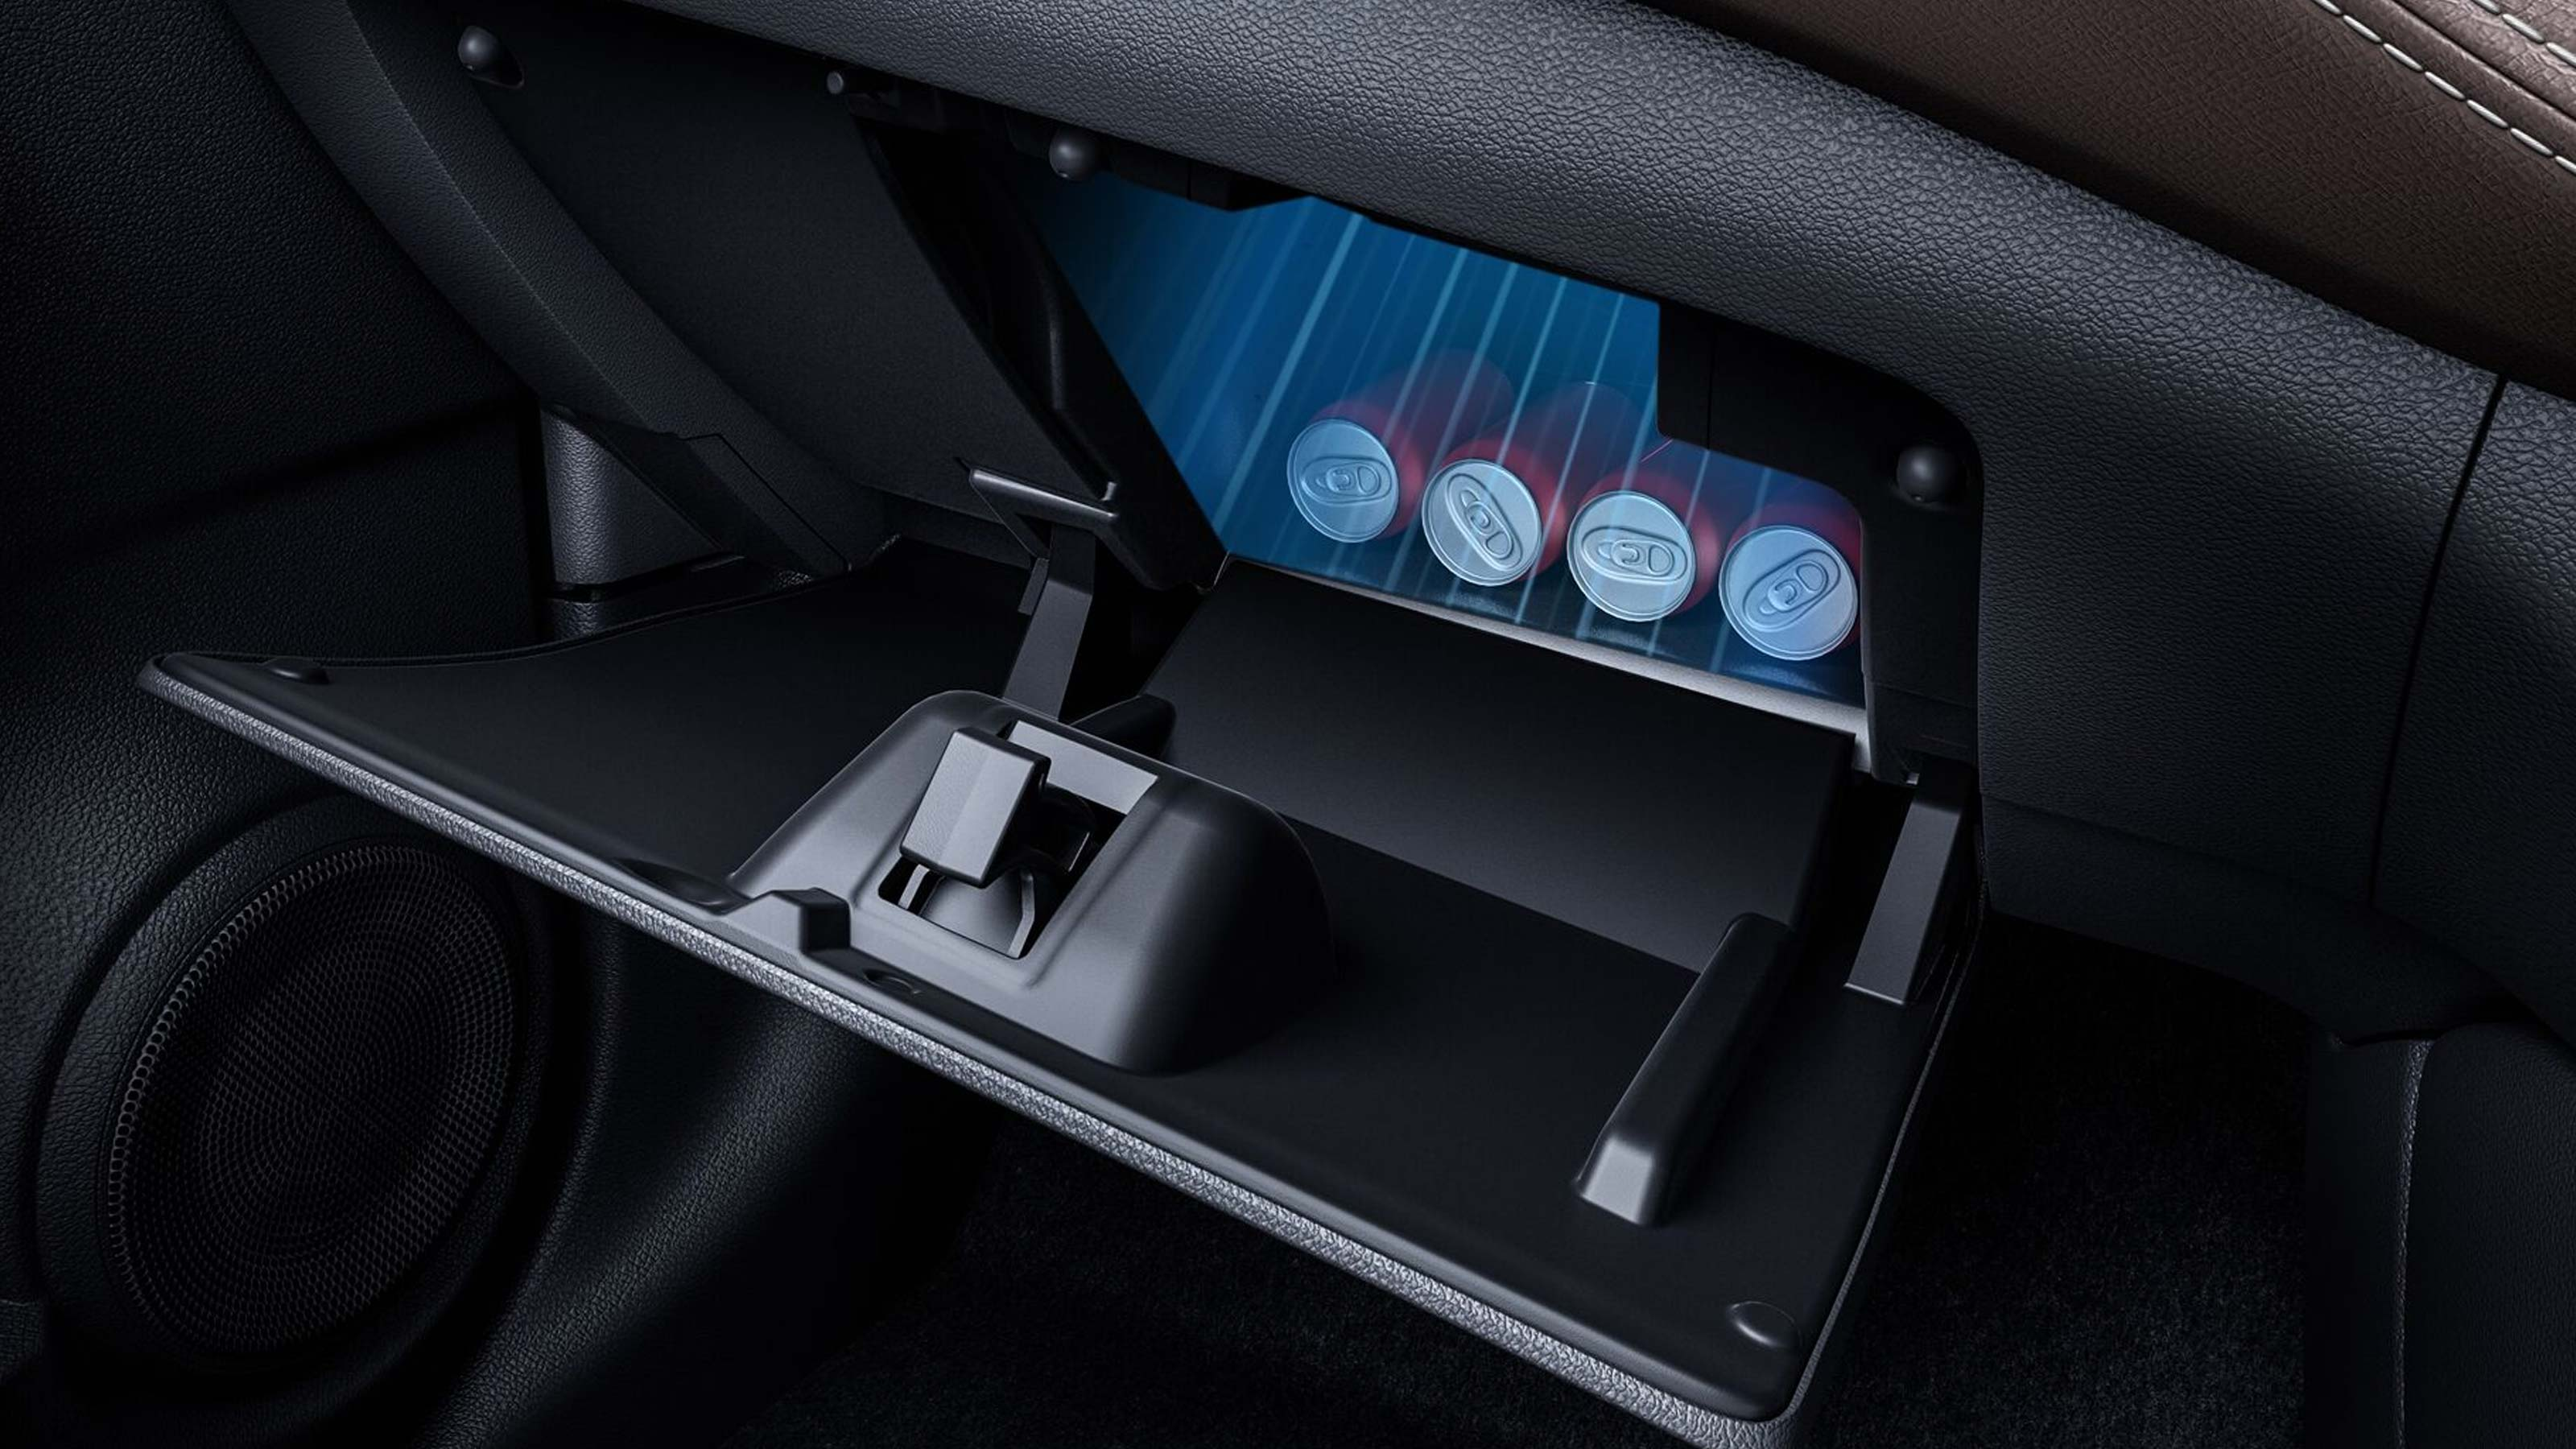 Cooling Glove Box with illumination